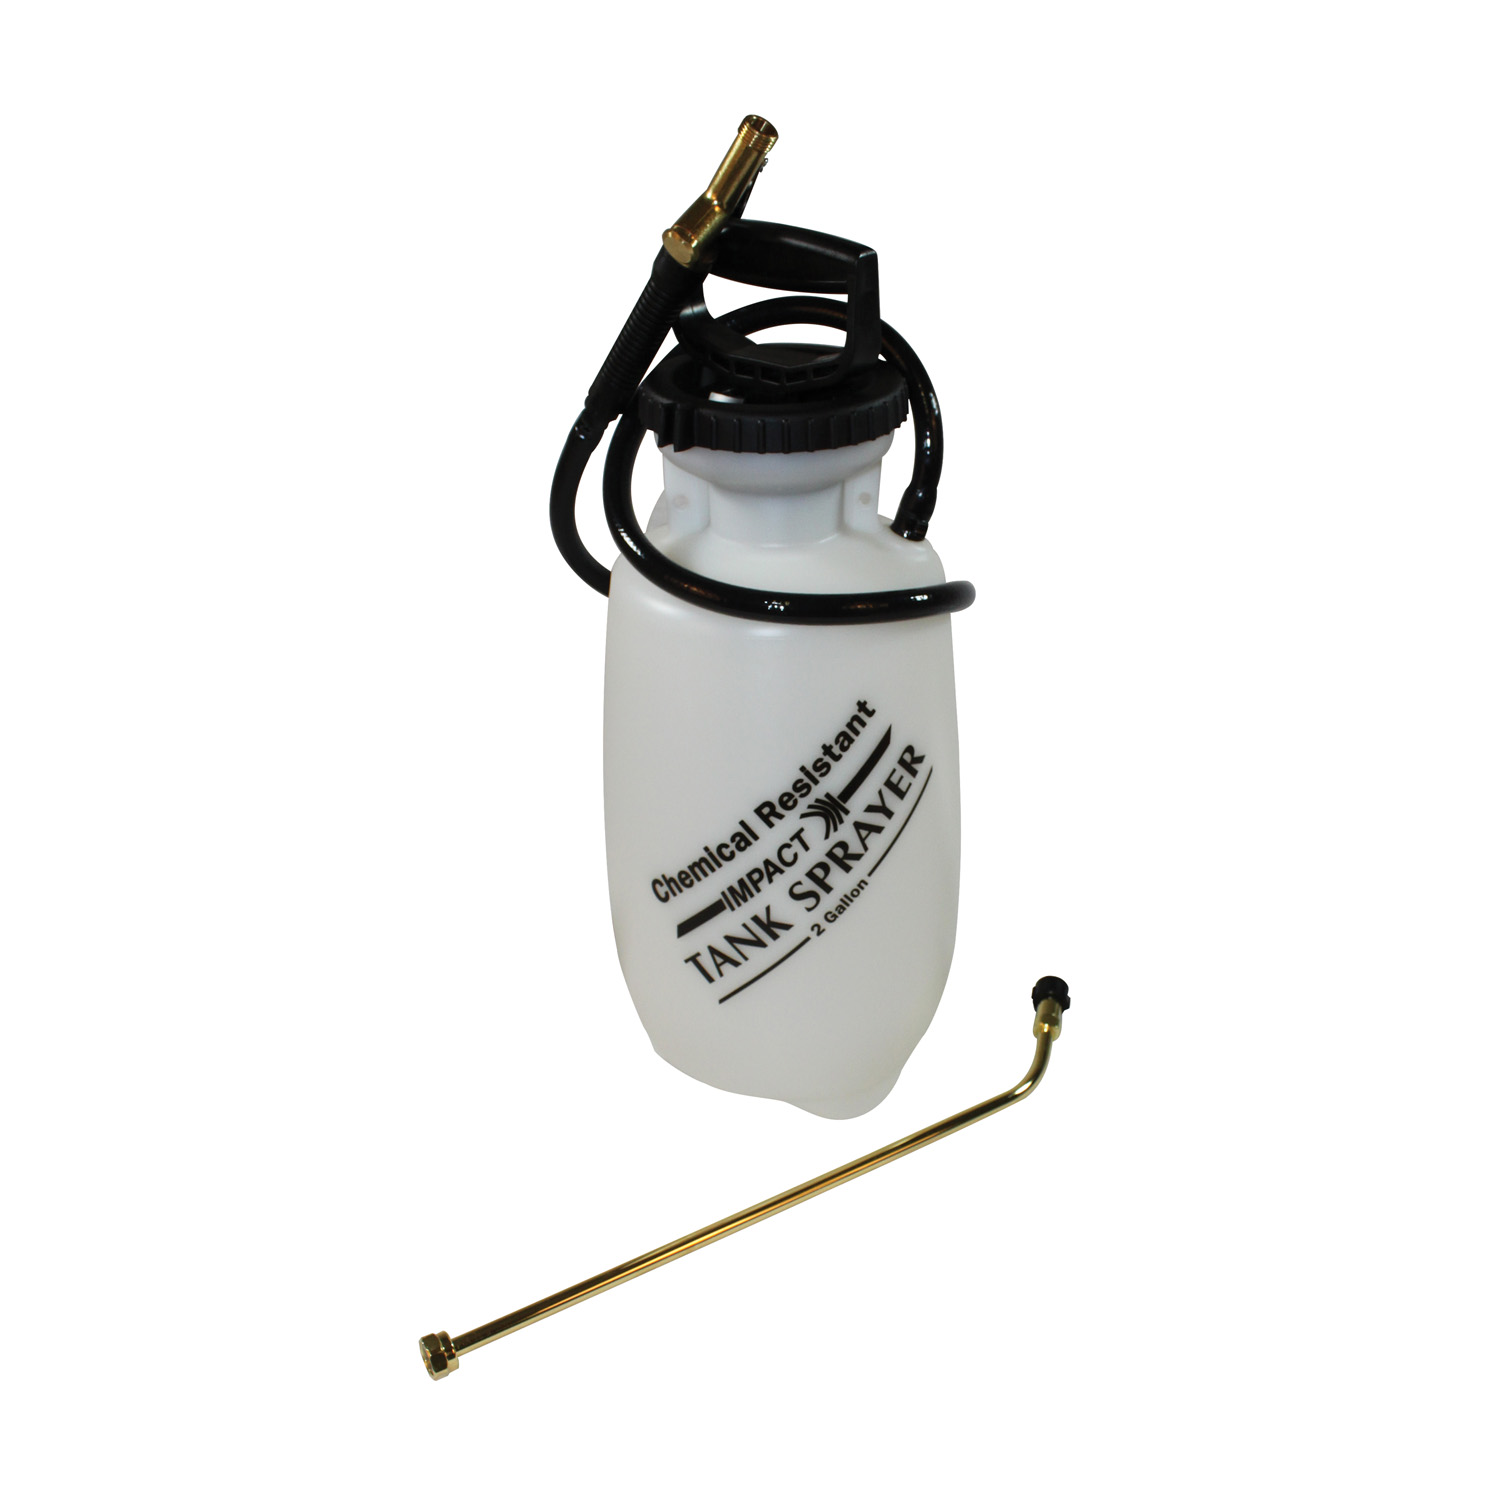 Impact Products 7522 chemical sprayer